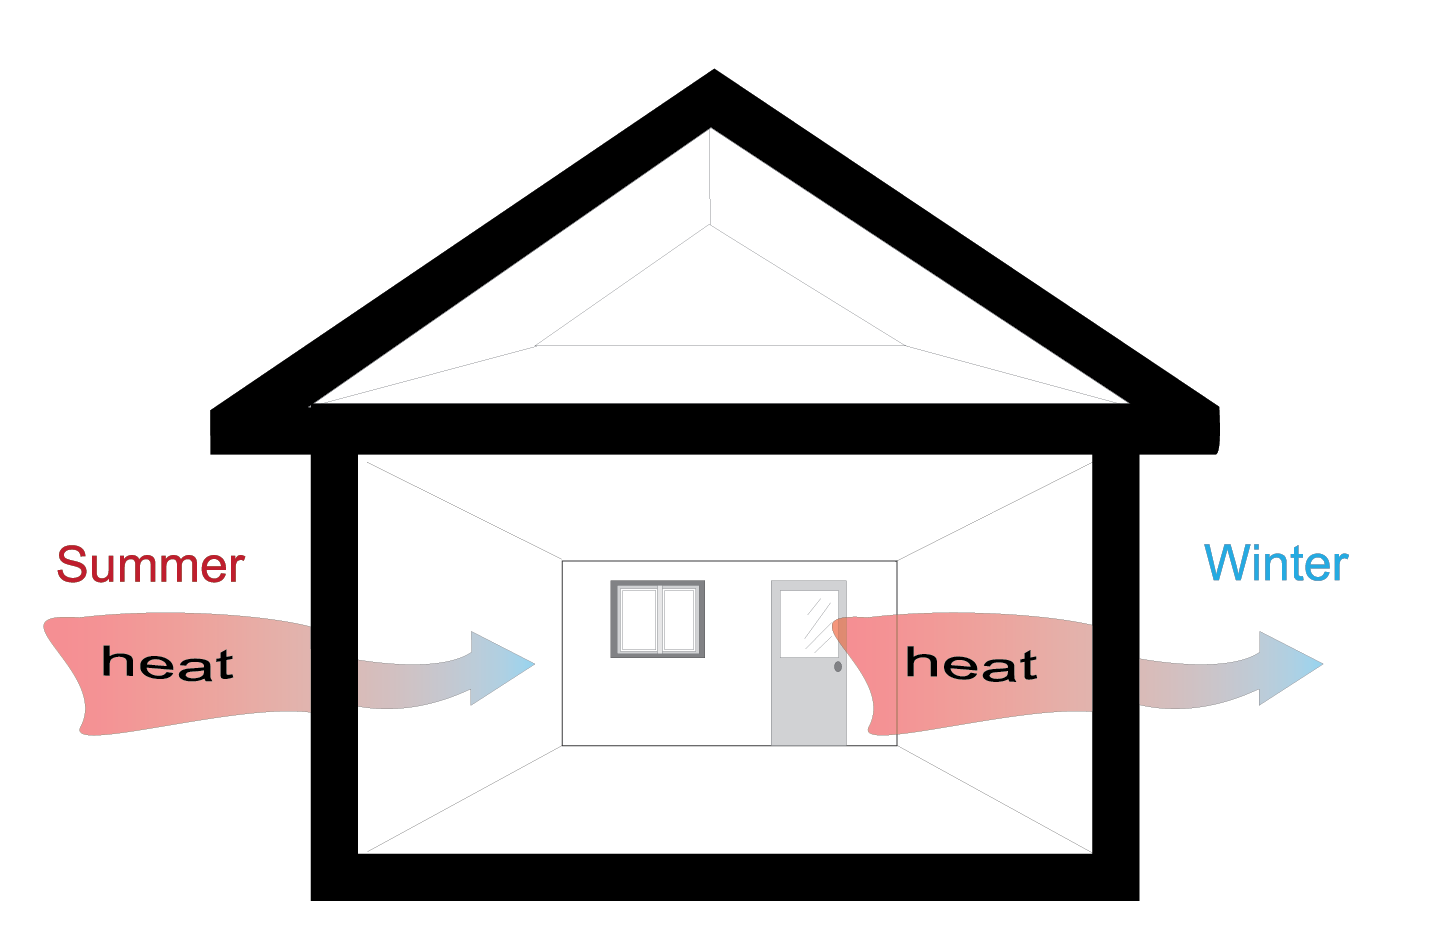 A High R Value Insulation Keeps Heat Out In Summer And Inside